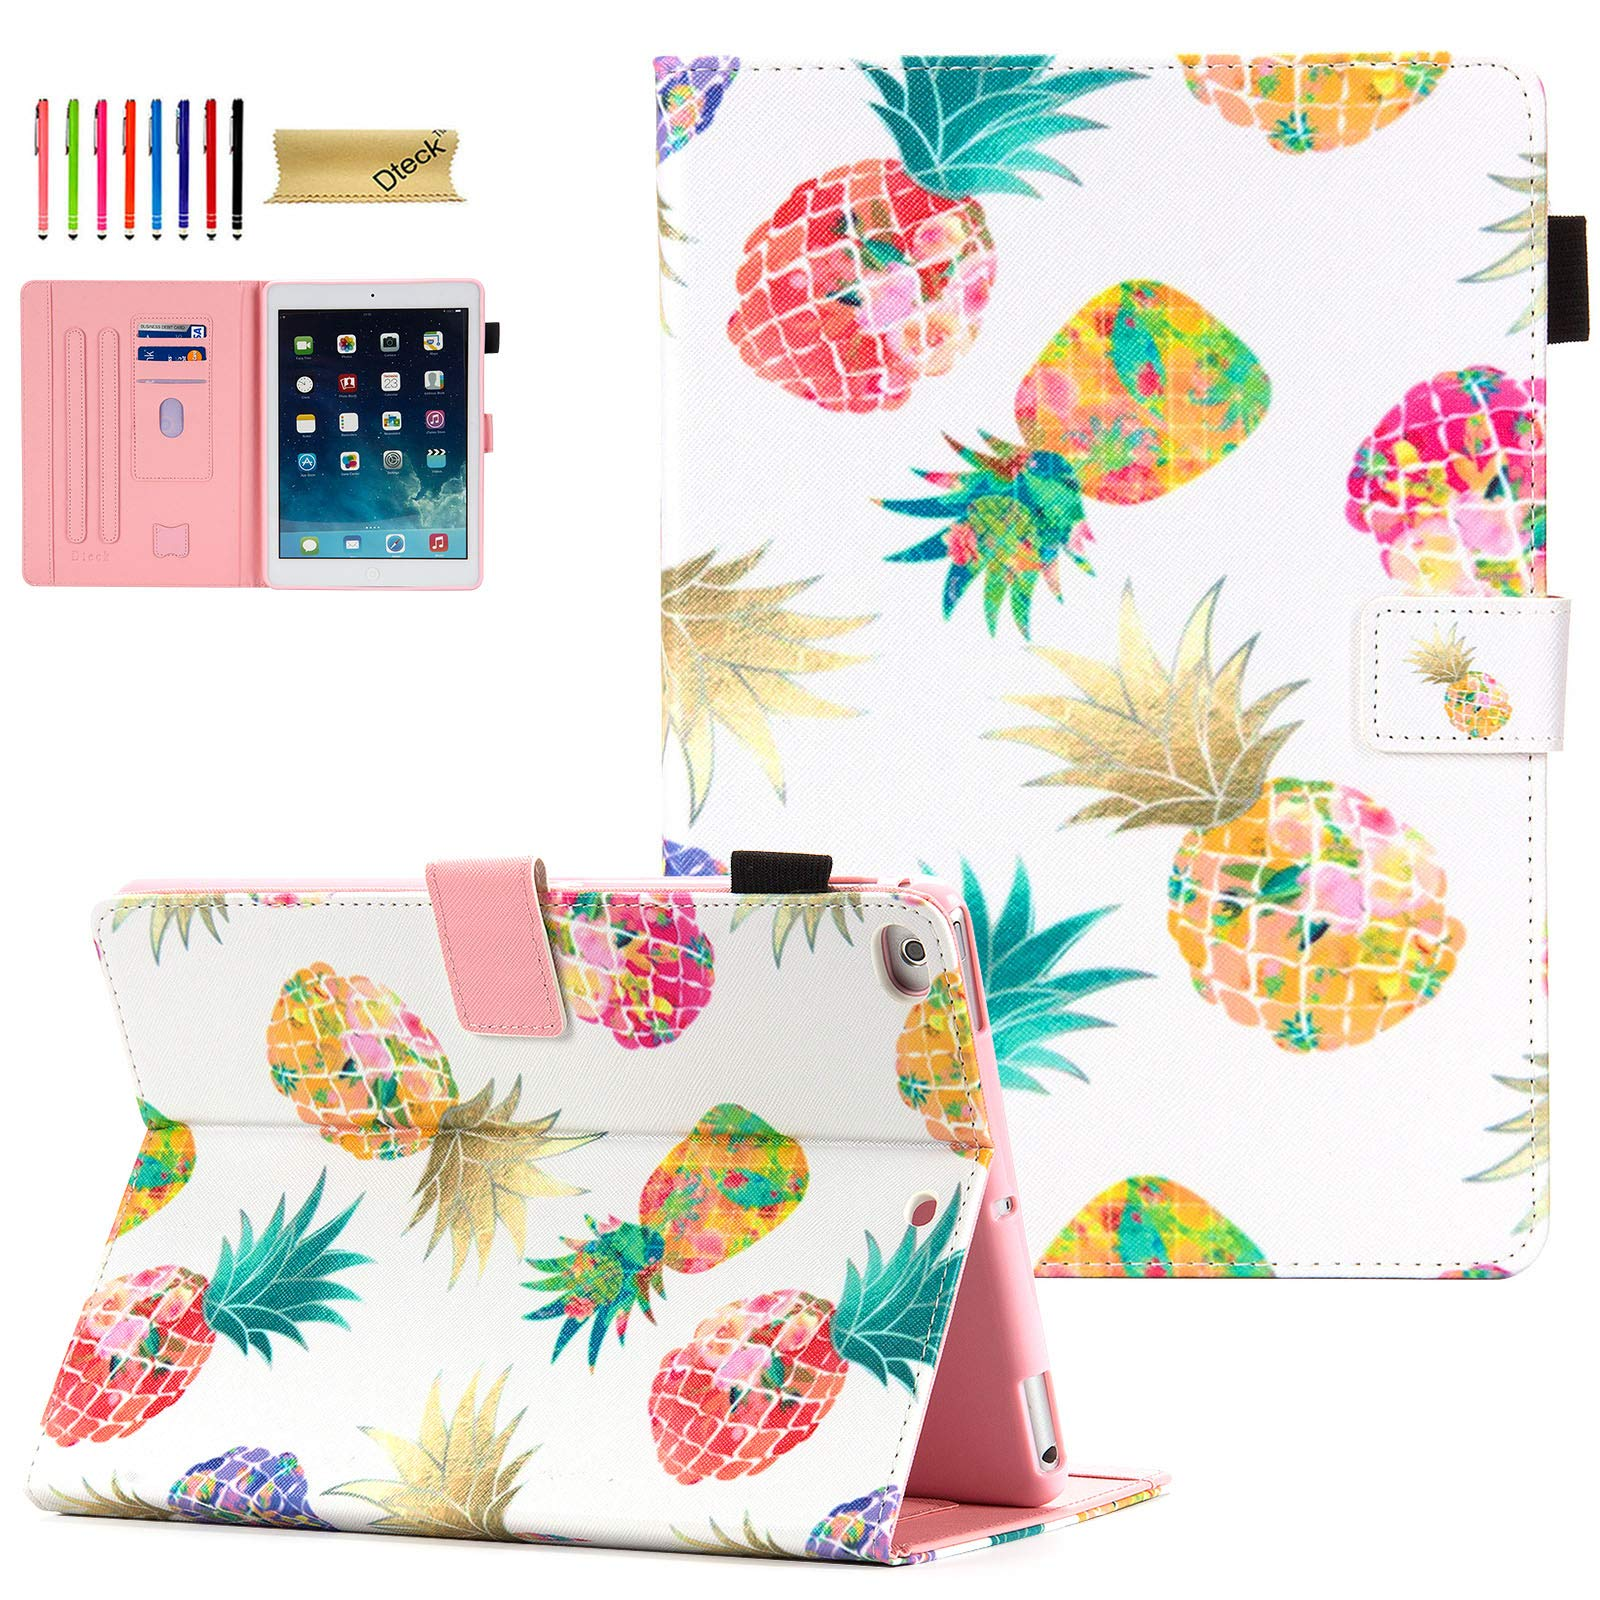 iPad 9.7 Case 2018/2017, iPad 6th/5th Gen Case with Pencil Holder, Dteck Premium Leather Folio Stand Case, Auto Wake/Sleep Protective Cover for iPad 9.7 2018/2017, iPad Air 1/2, Colorful Pineapples